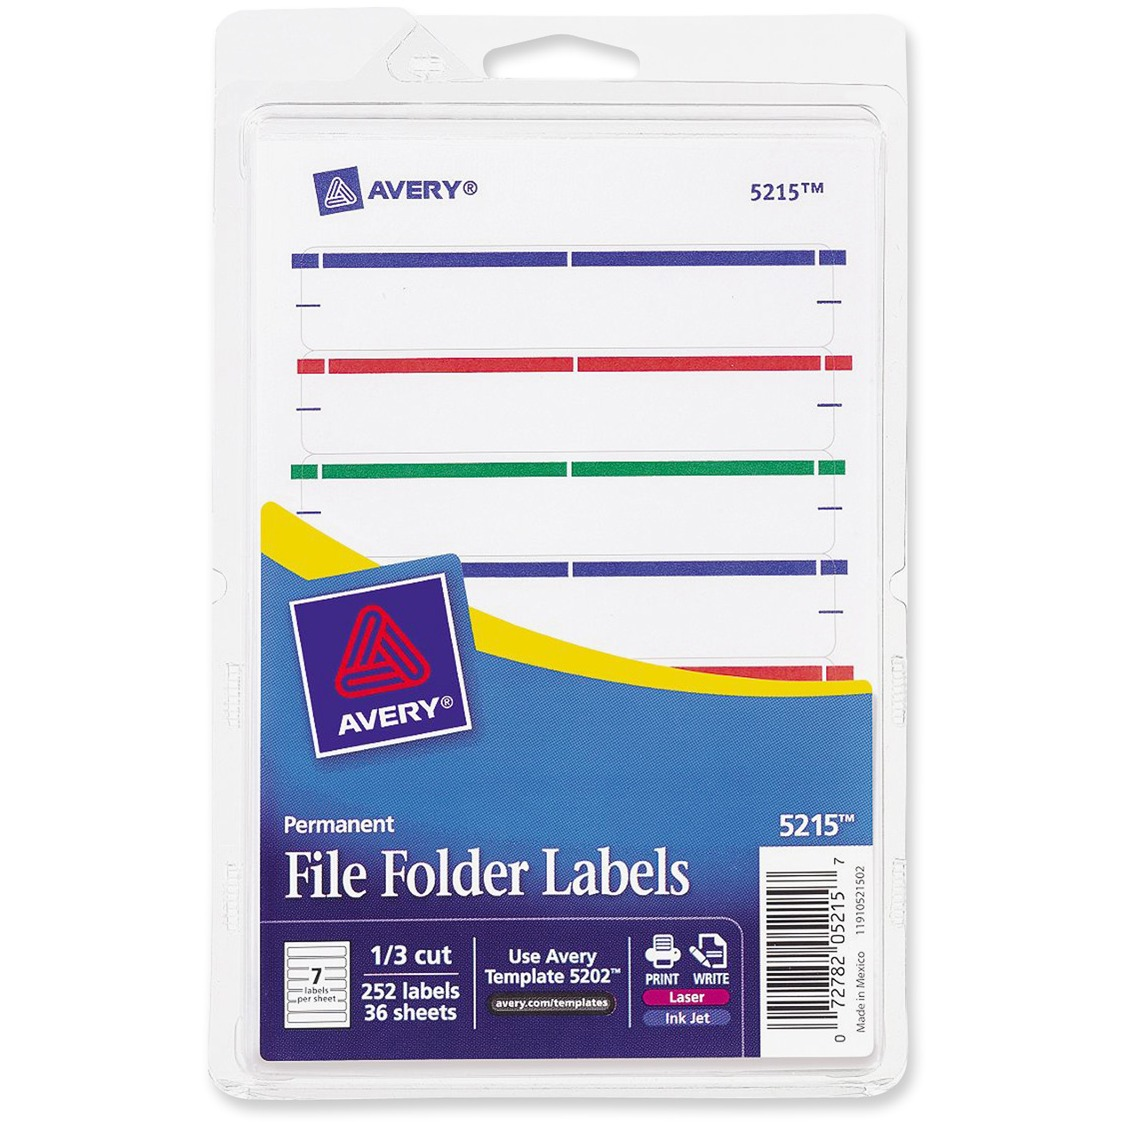 Avery Print or Write File Folder Labels, 11/16 x 3 7/16, White/Assorted Bars, 252/Pack